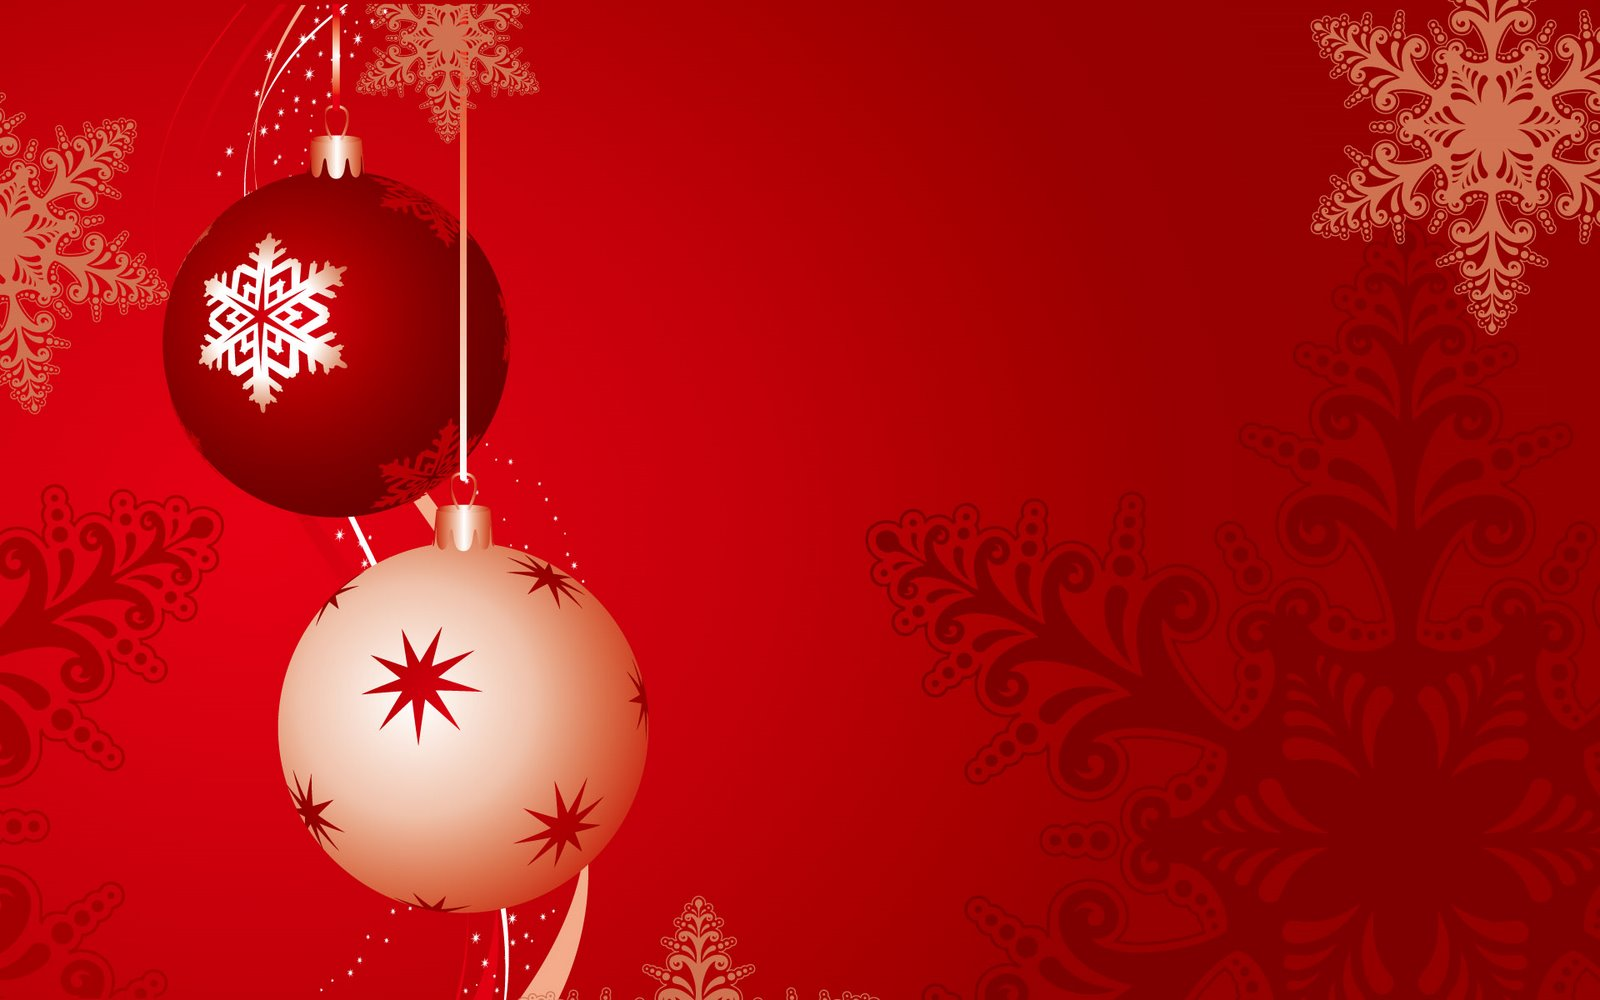 wallpaper christmas wallpapers - photo #29